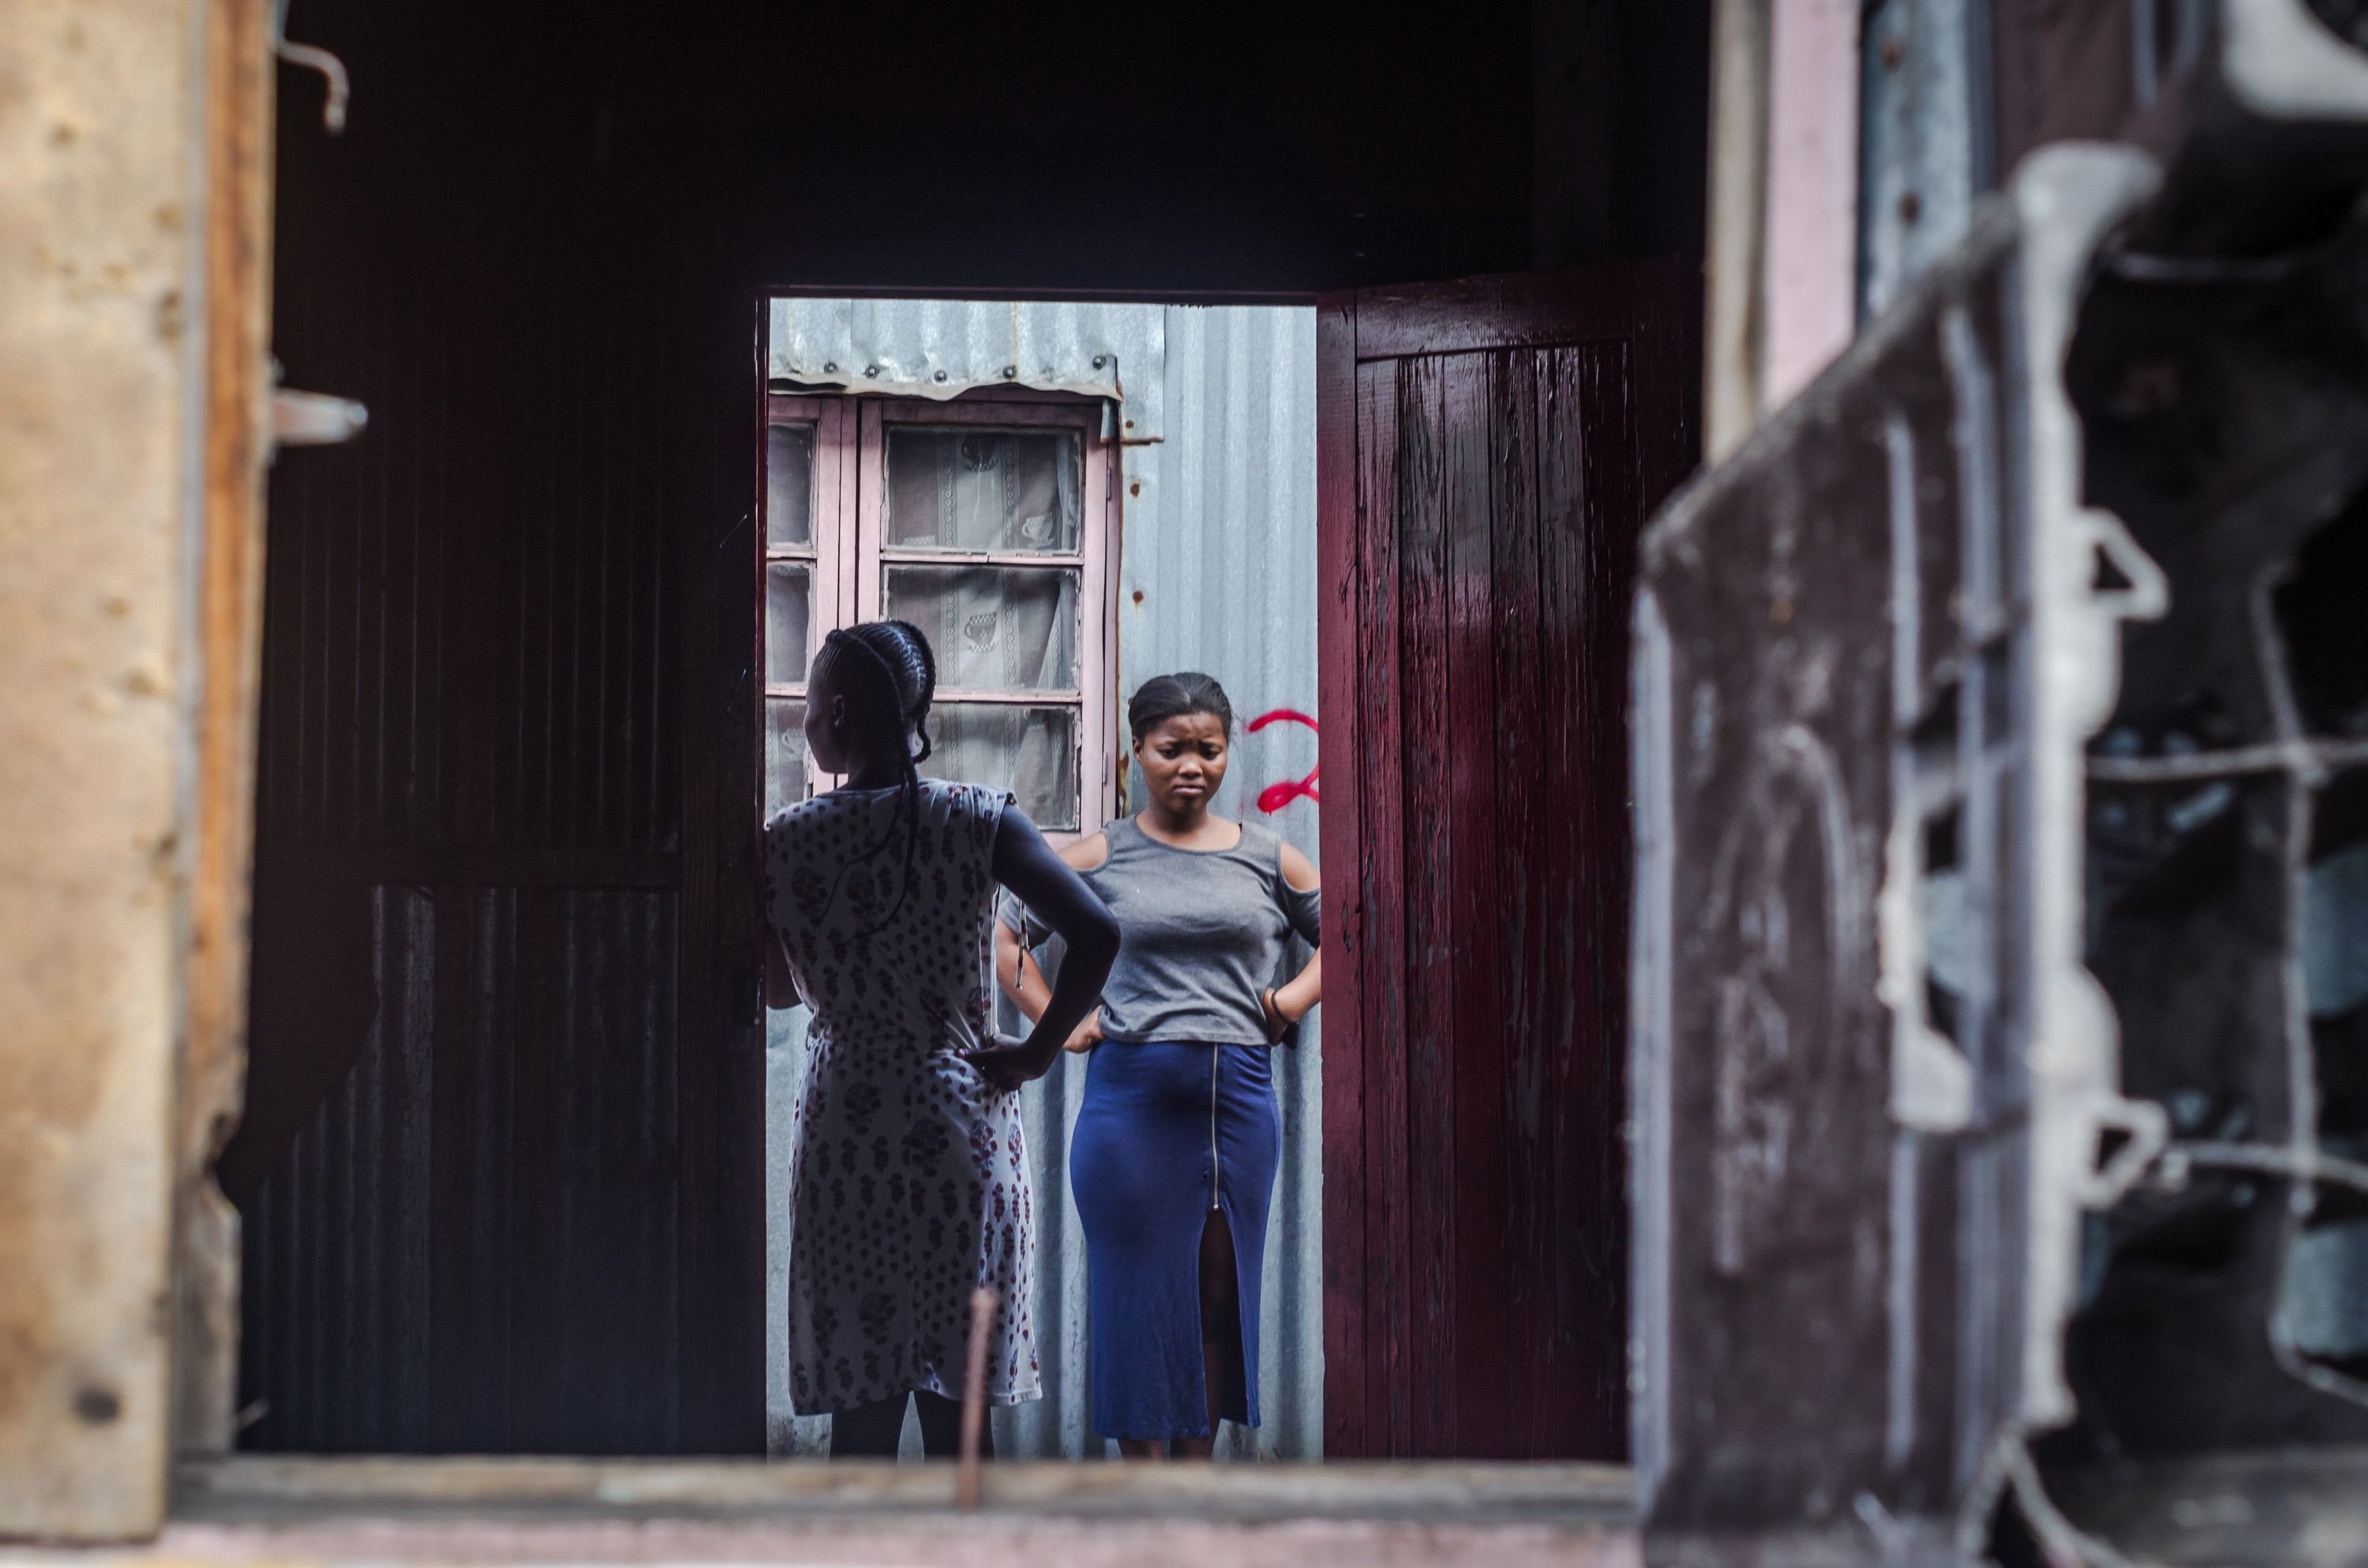 15 June 2018: Residents of Lamontville Transit Camp being evicted by the City of eThekwini's Security Management Unit and the Department of Human Settlements, in Lamontville South of Durban.